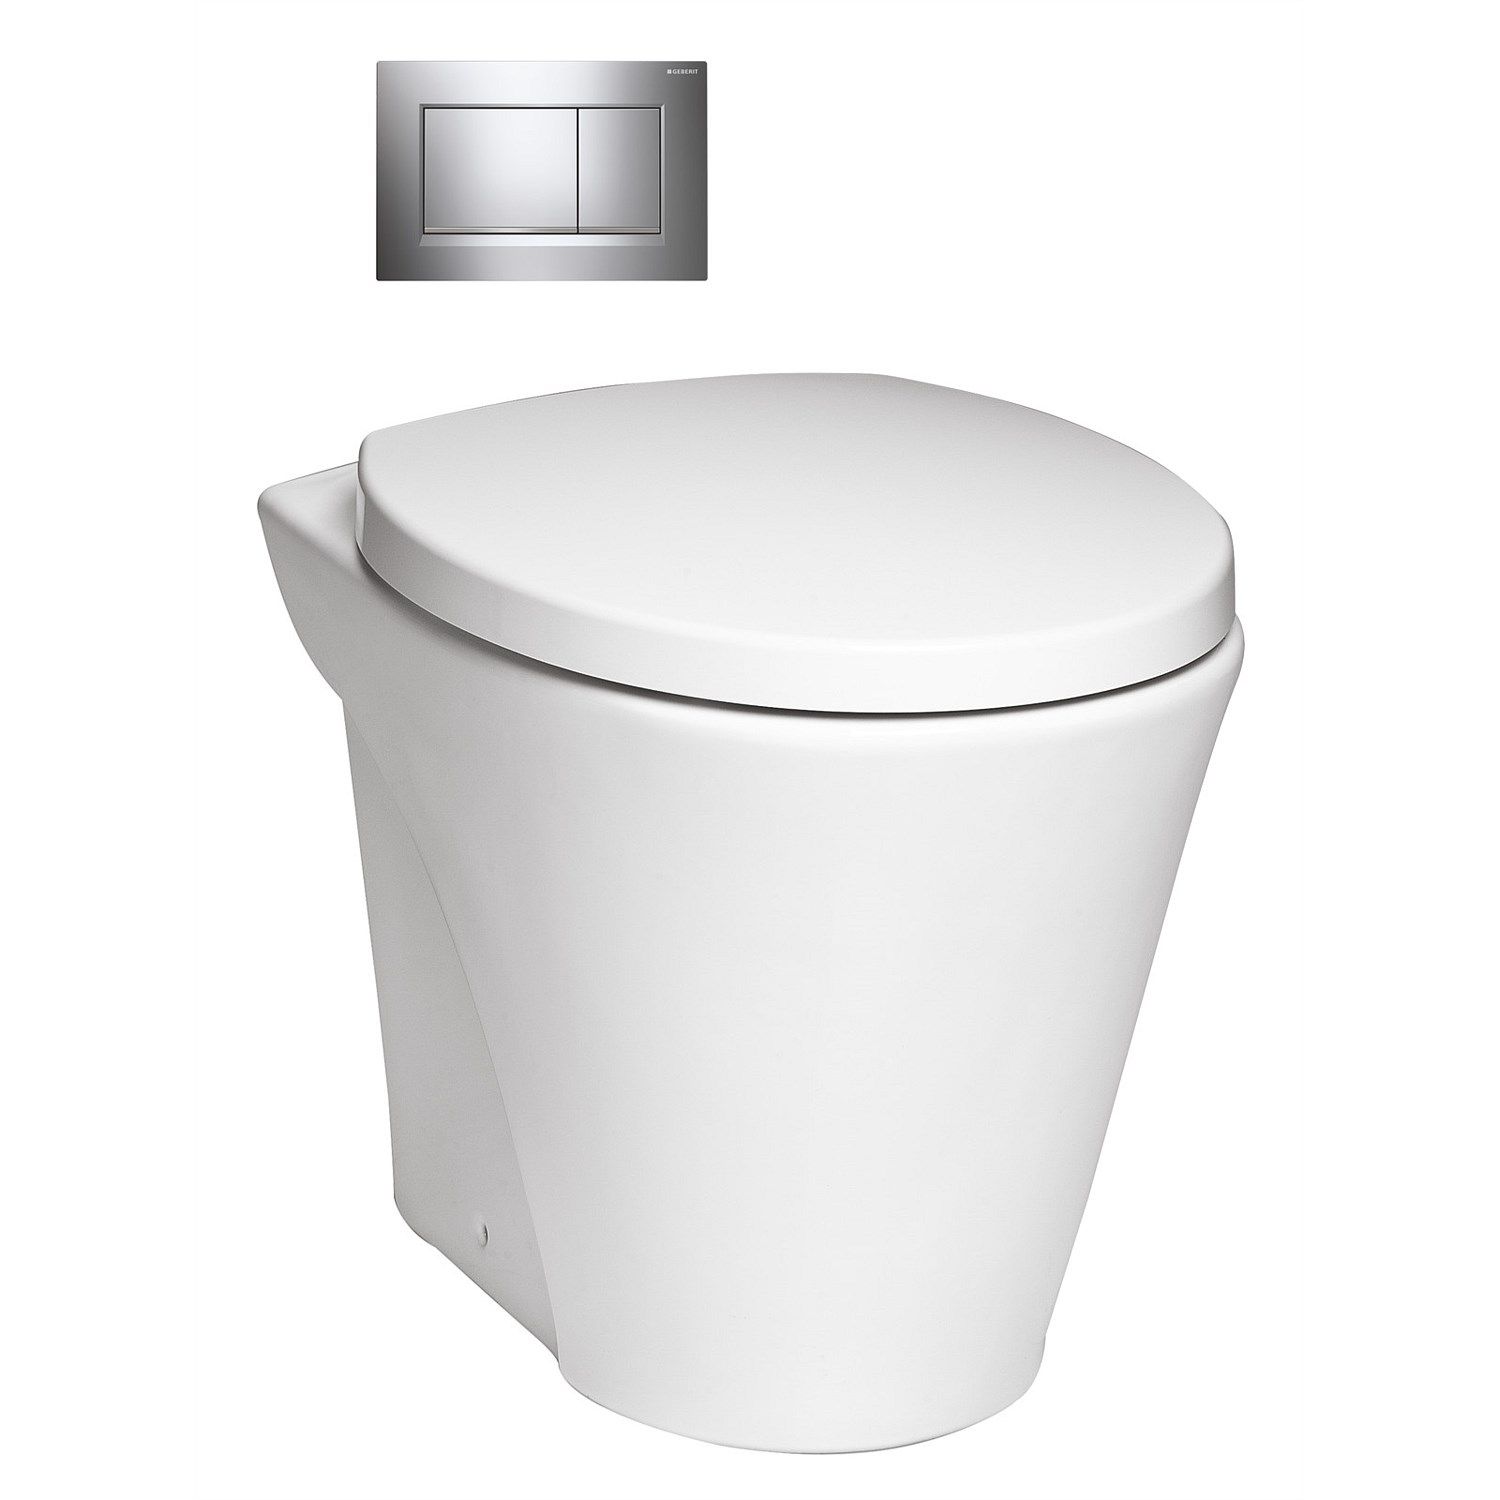 Back-to-wall - Toto Santa Maria Wall-Faced Toilet Suite